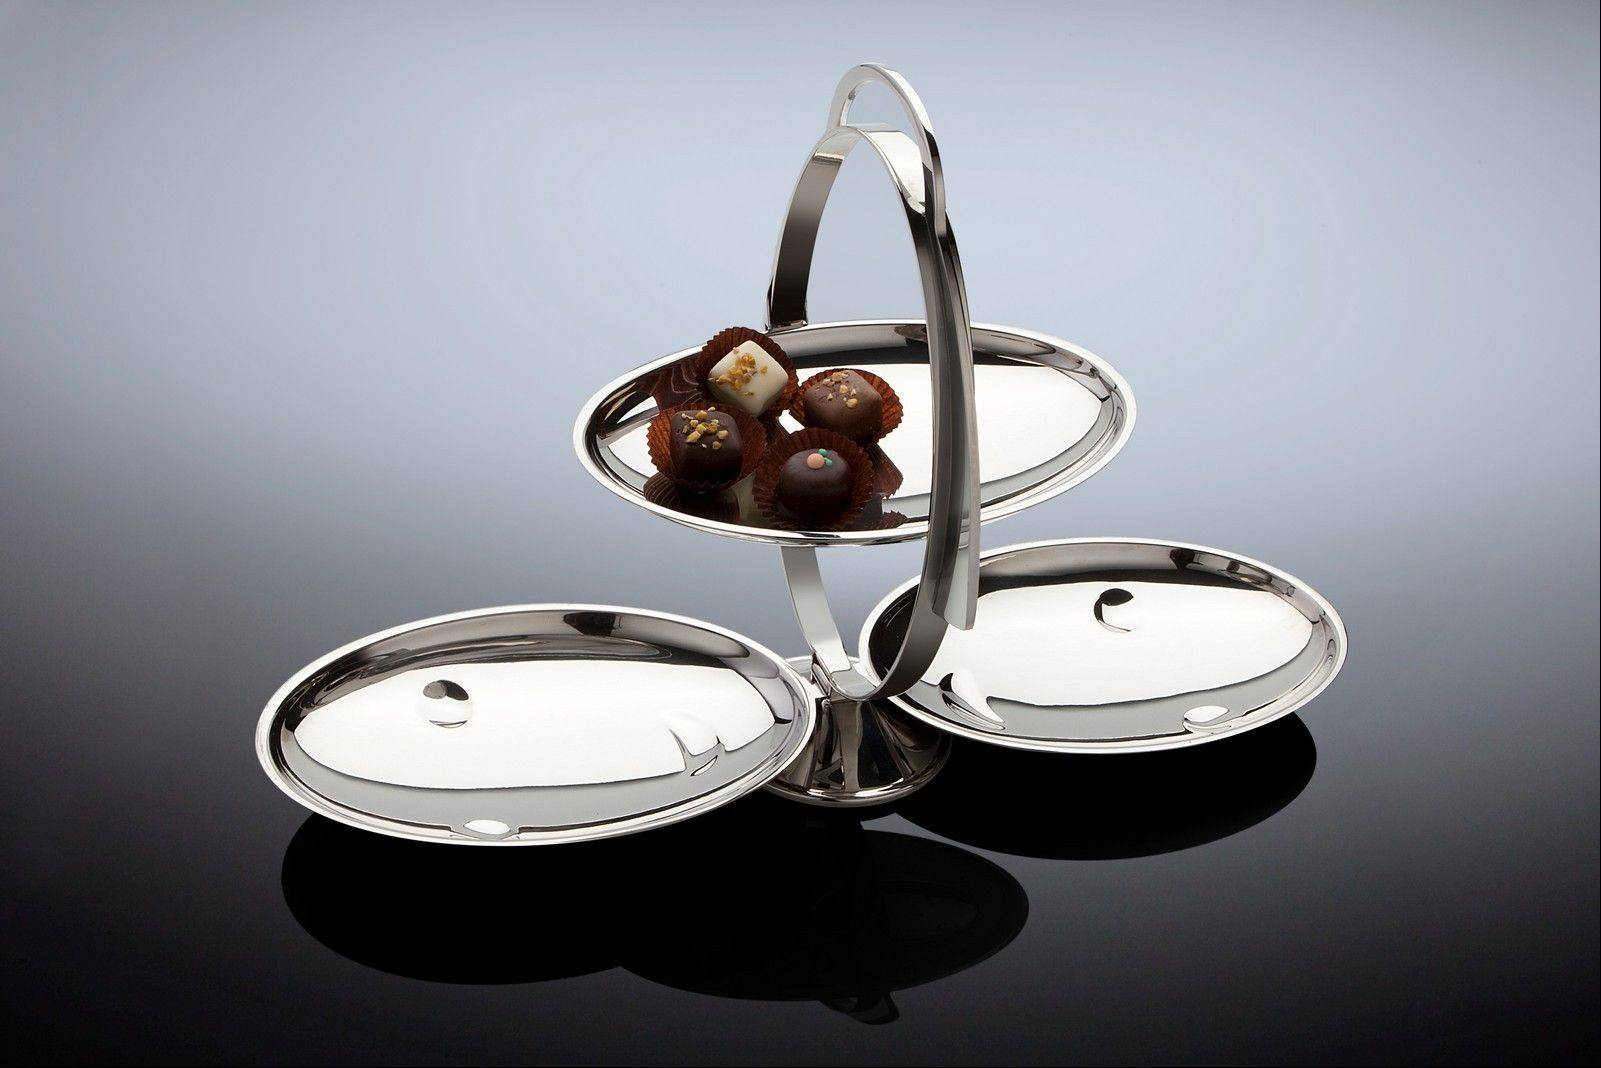 The Anna Gong cake, candy or cookie plate is a new Alessi product.